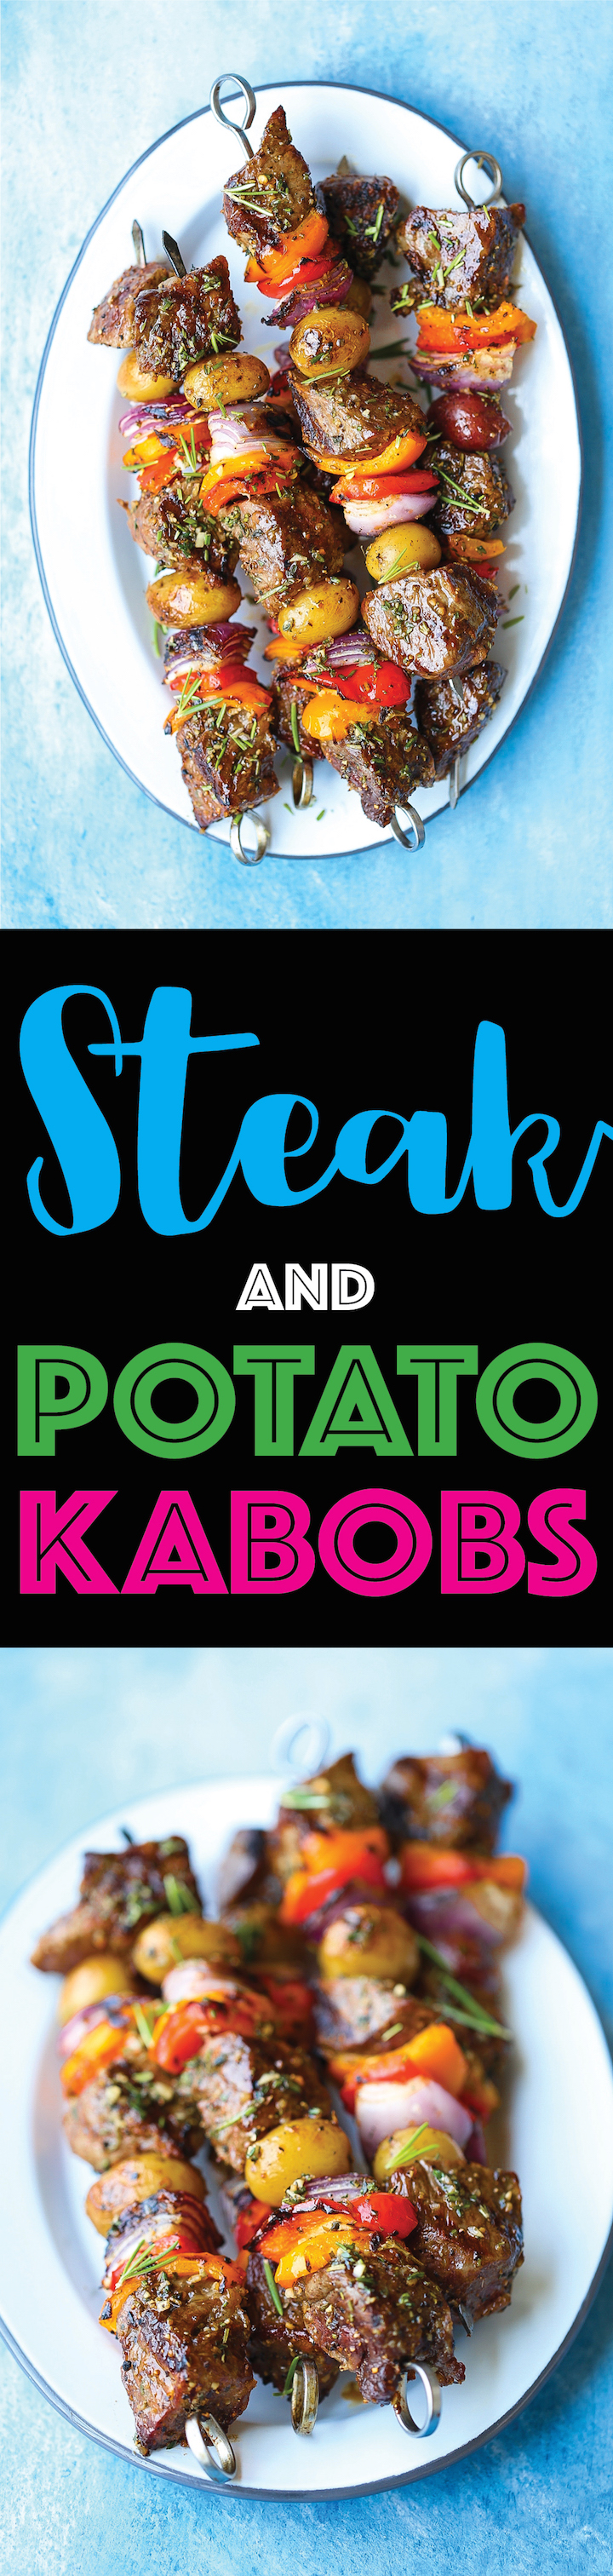 Steak and Potato Kabobs - Everyone's favorite summer meal! The meat comes out so amazingly tender and flavorful with the fresh garlicky-herb mixture!